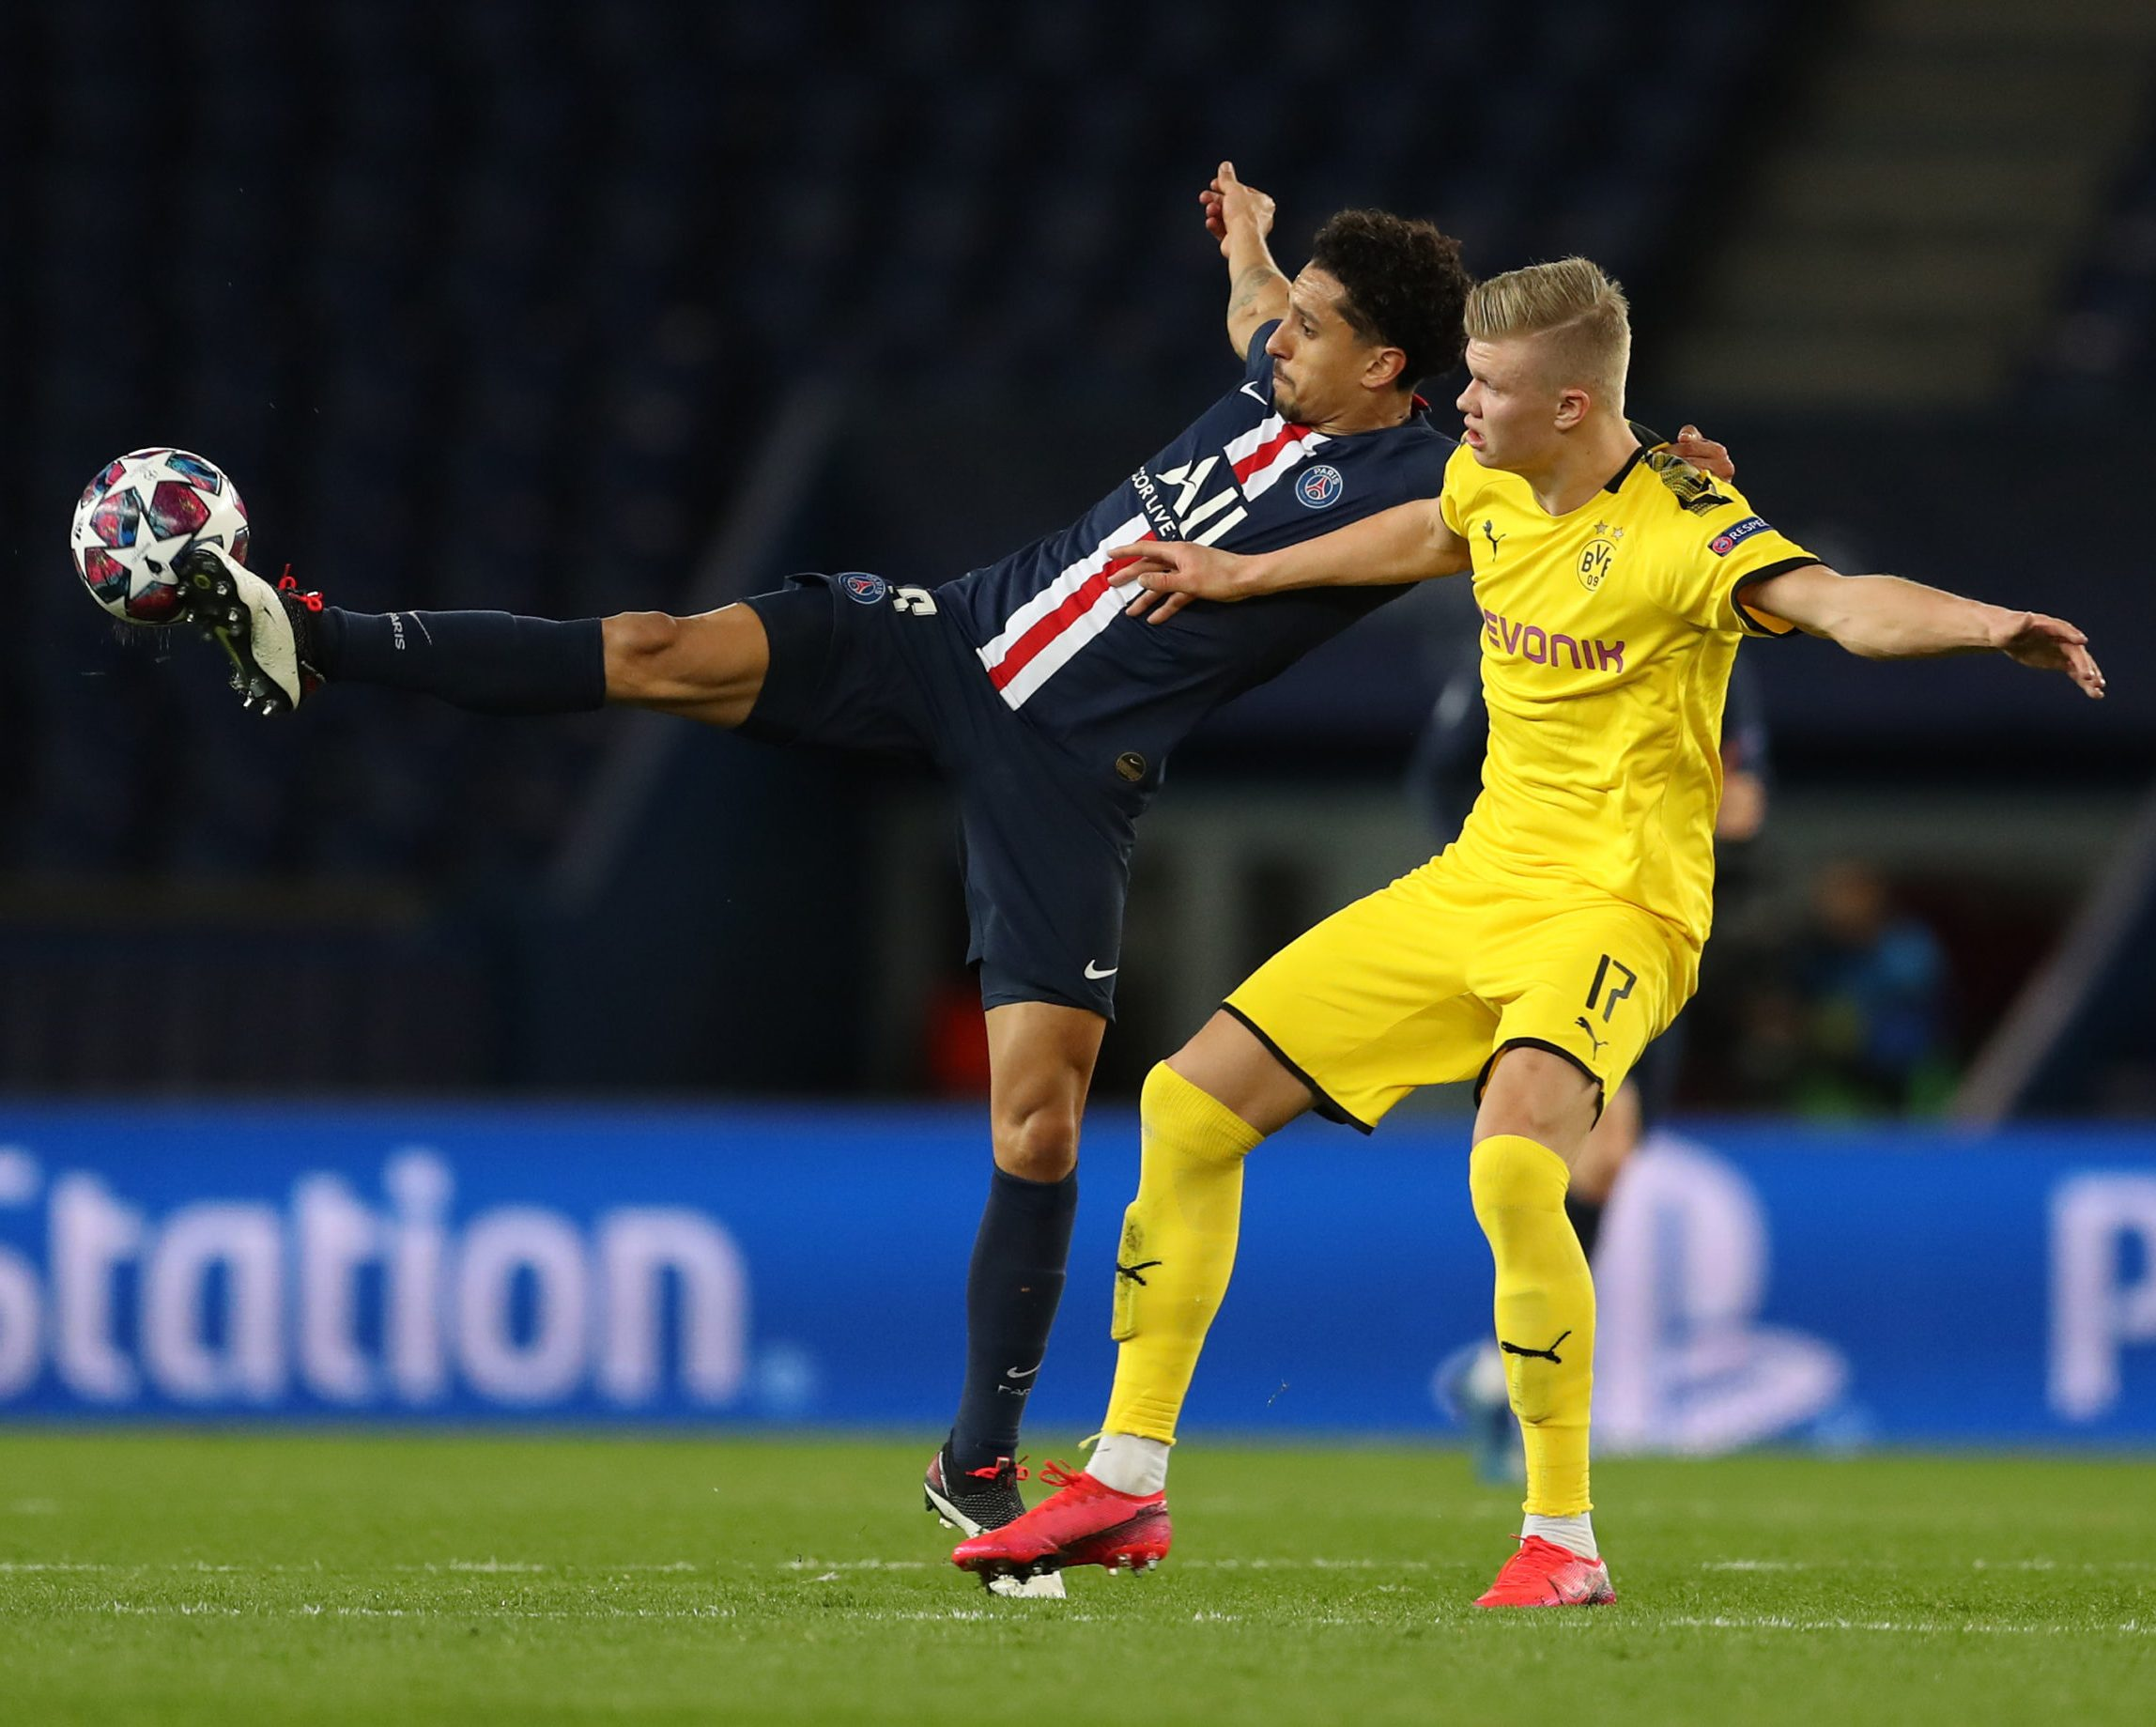 Bundesliga Paris Saint Germain Vs Borussia Dortmund Uefa Champions League Probable Line Ups Match Stats And Live Blog